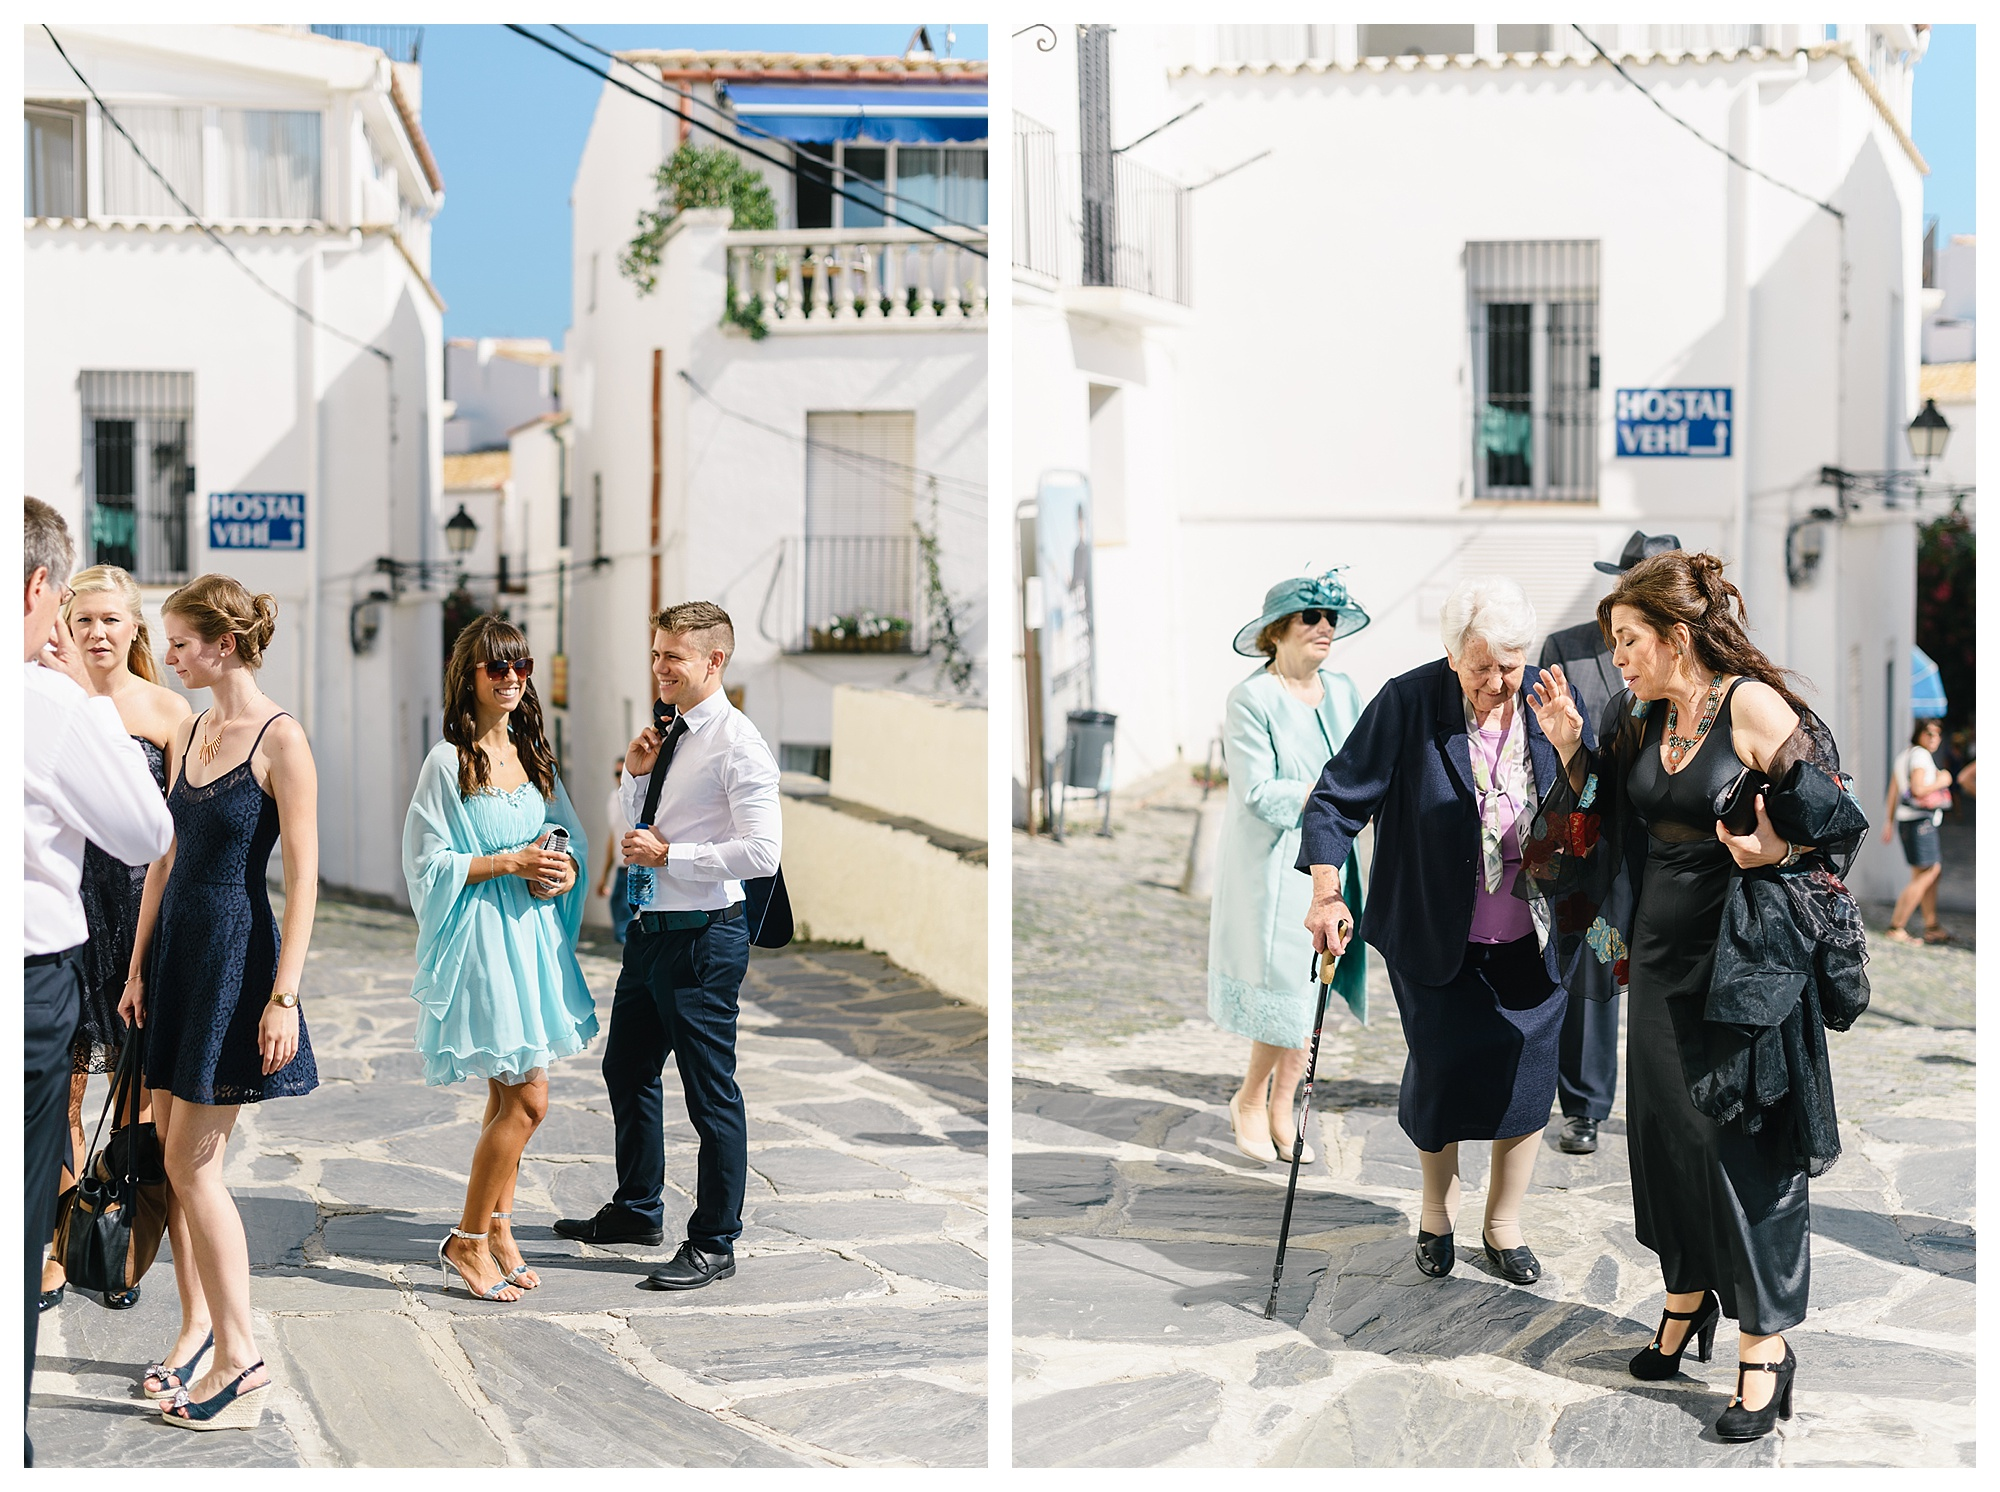 Fotograf Konstanz - Wedding Spain Cadaques Elmar Feuerbacher Photography 14 - Als Destination Wedding Fotograf in Cadaqués, Spanien  - 14 -